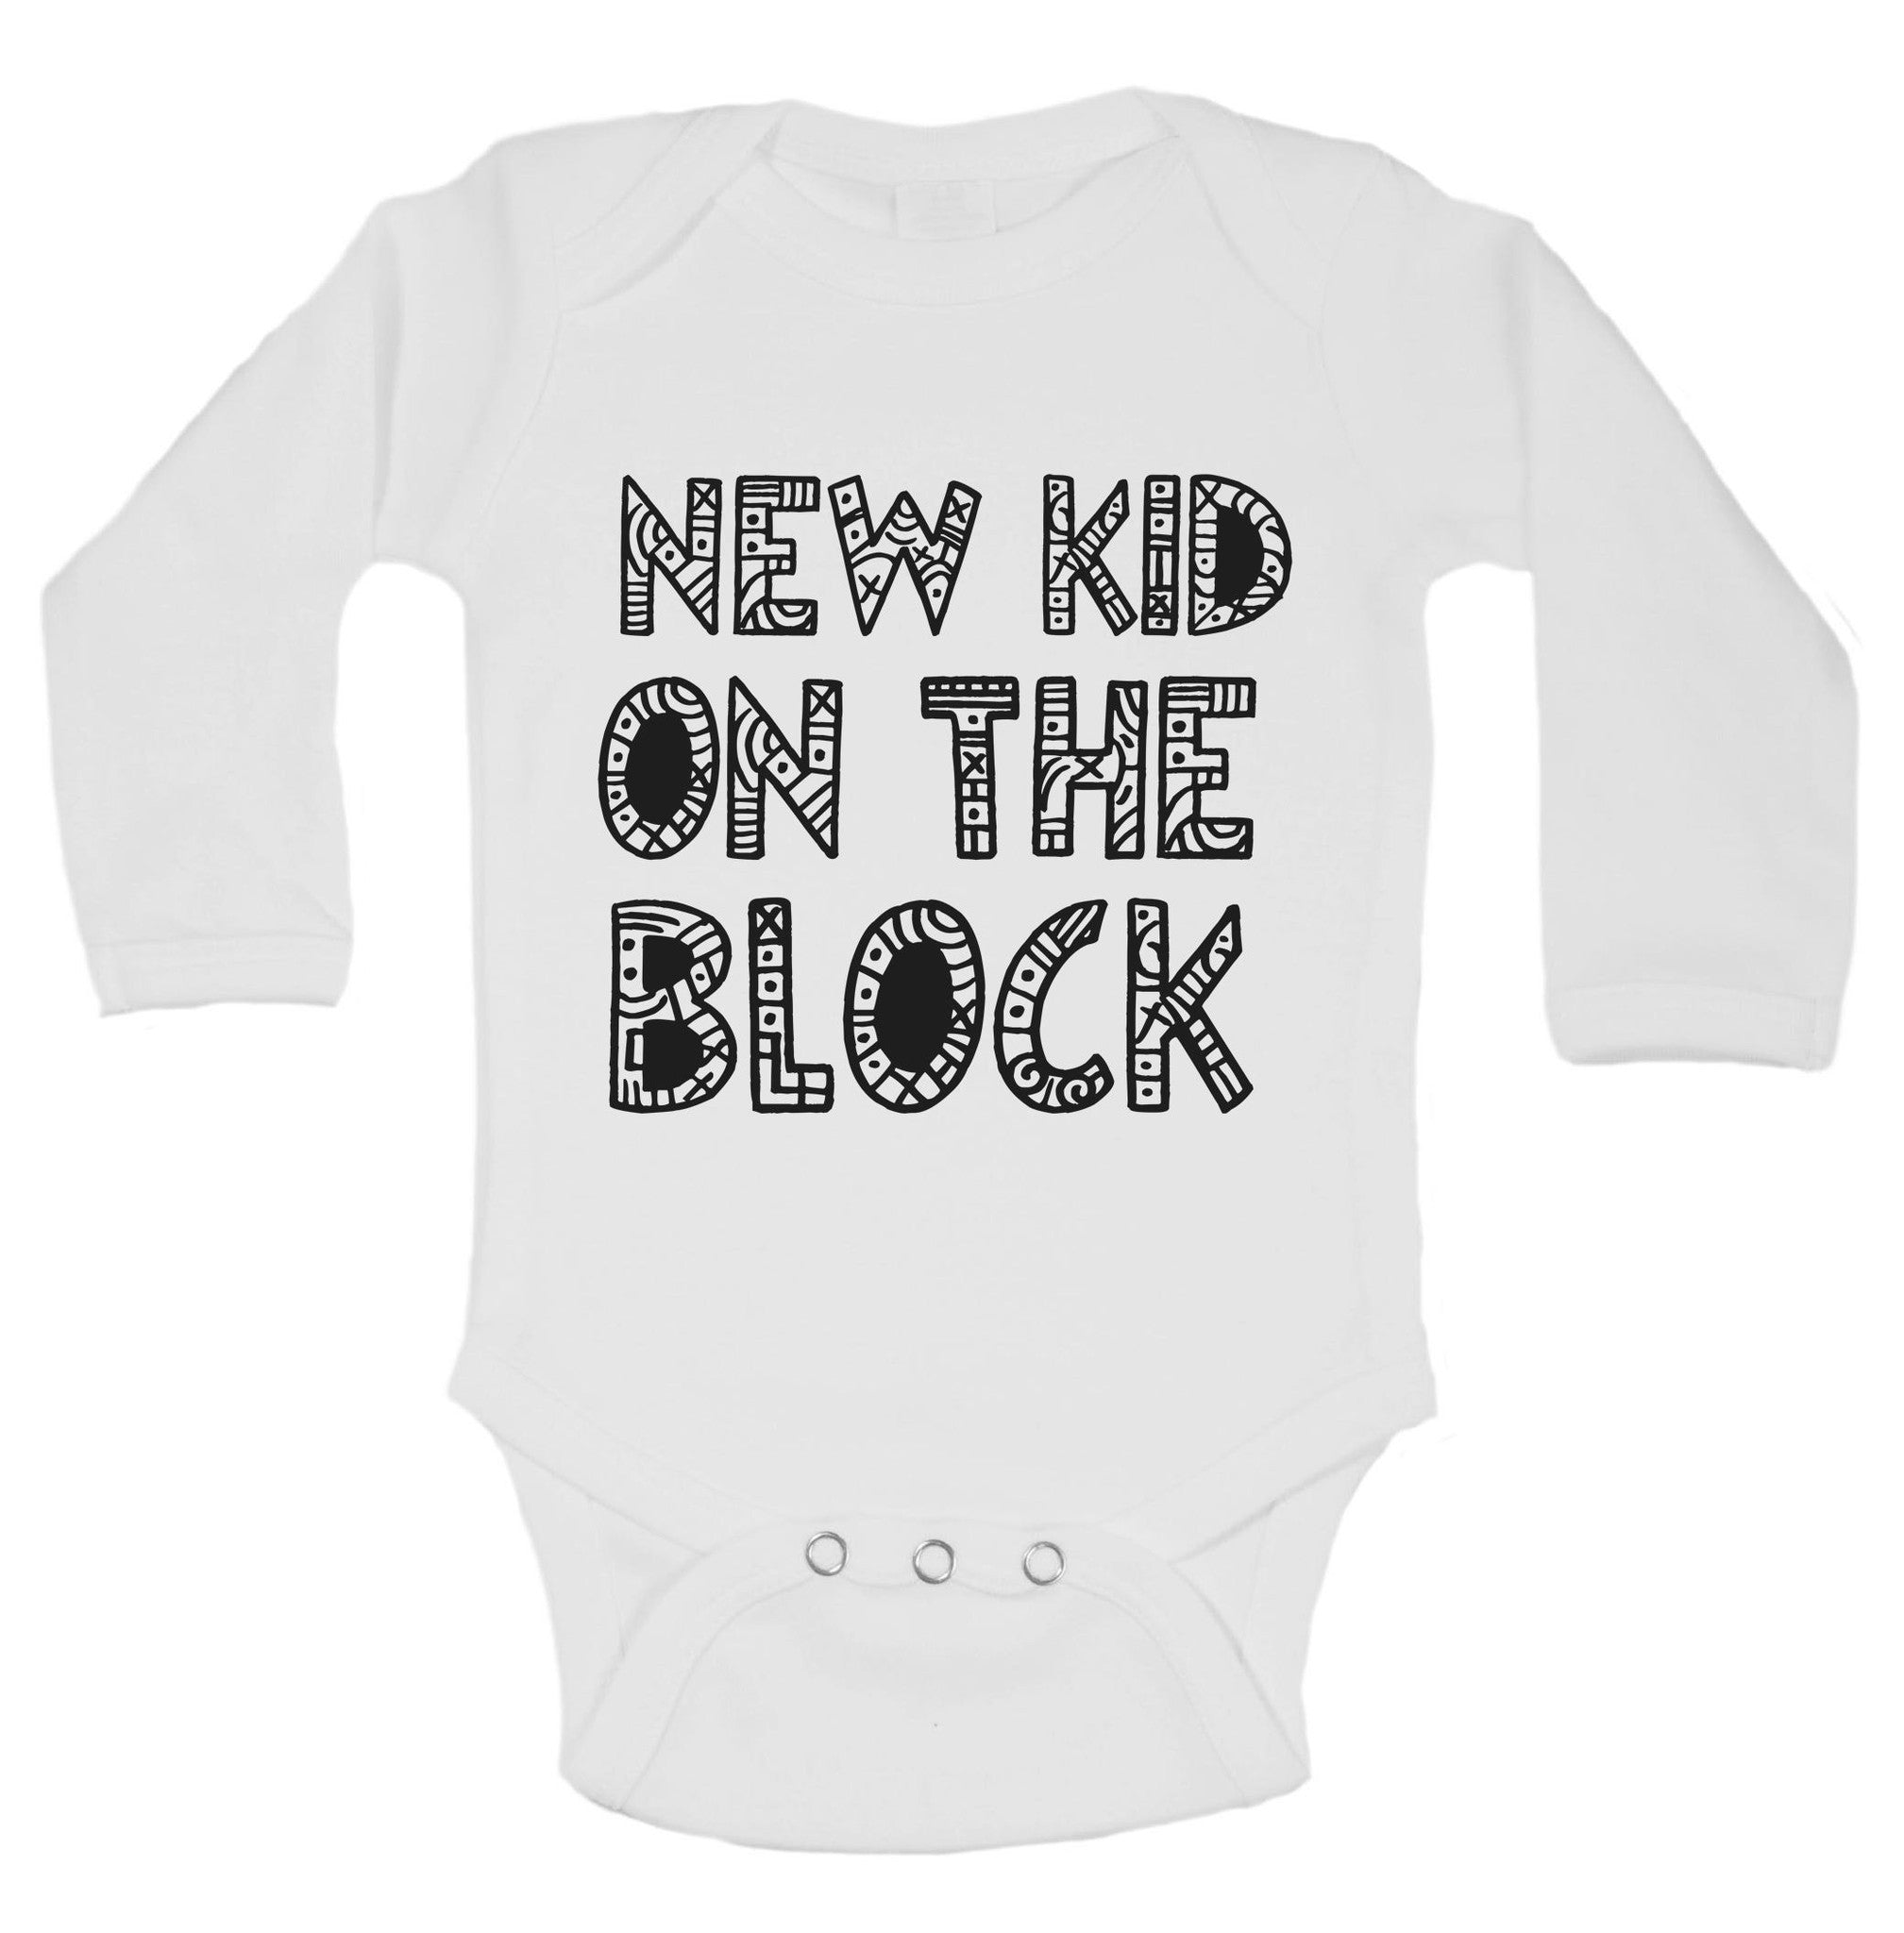 New Kid On The Block Funny Kids Onesie - B201 - Funny Shirts Tank Tops Burnouts and Triblends  - 1